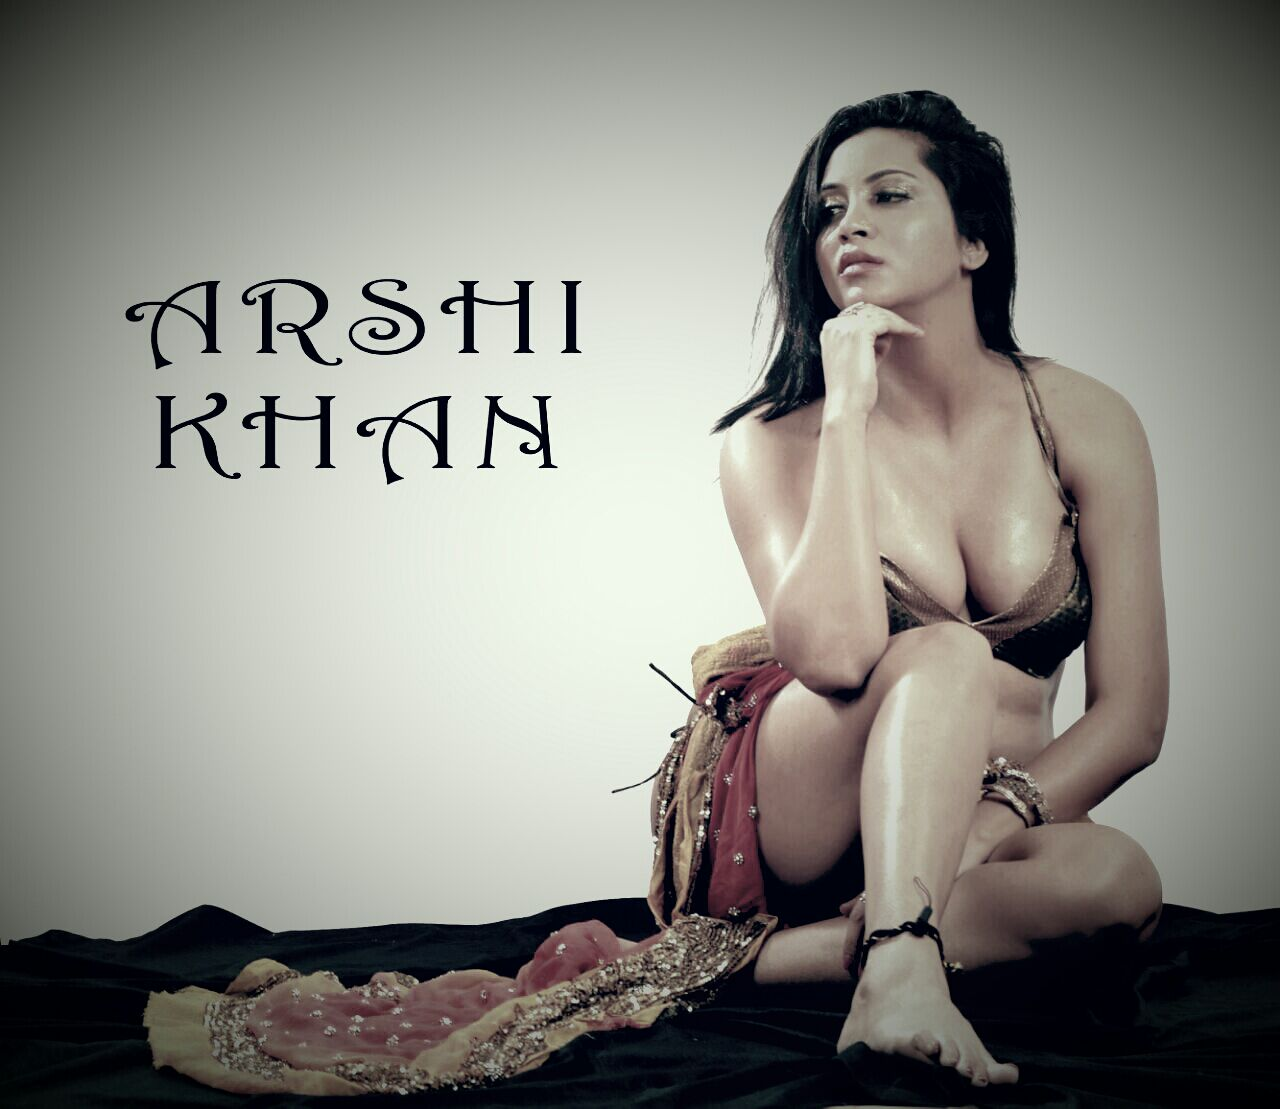 Arshi Khan hot bikini photoshoot